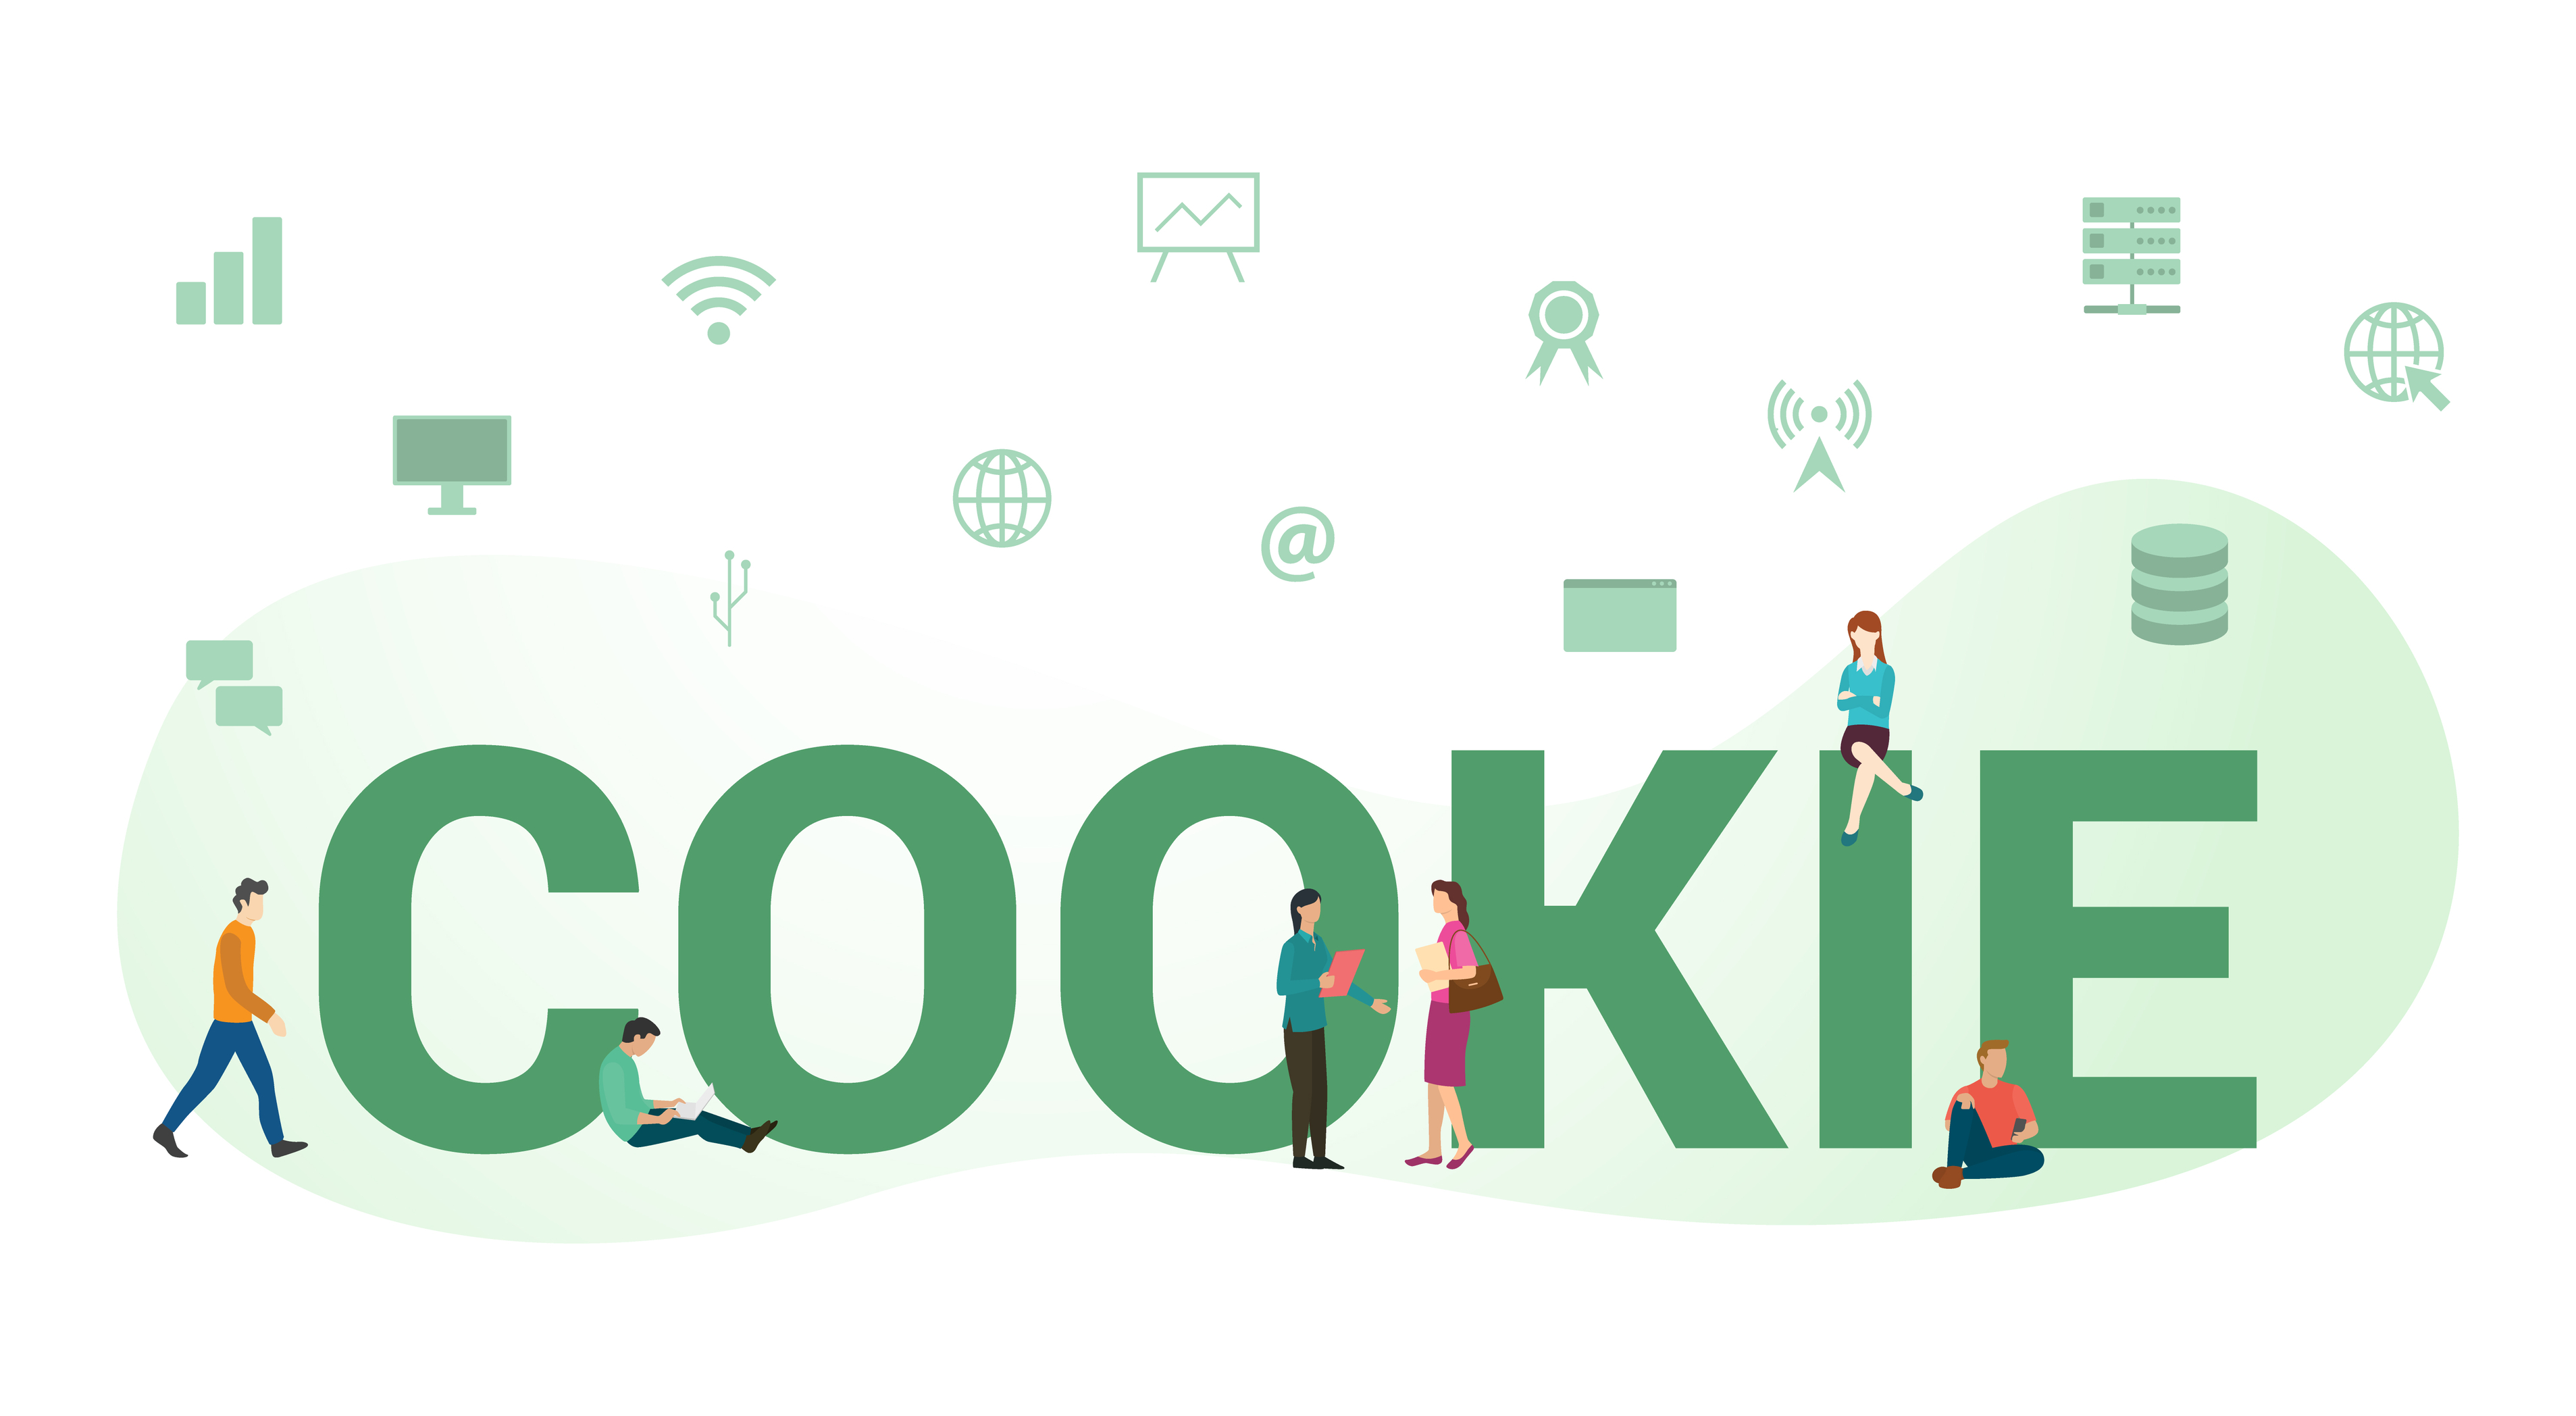 online-marketing-zukunft-cookies-illustration